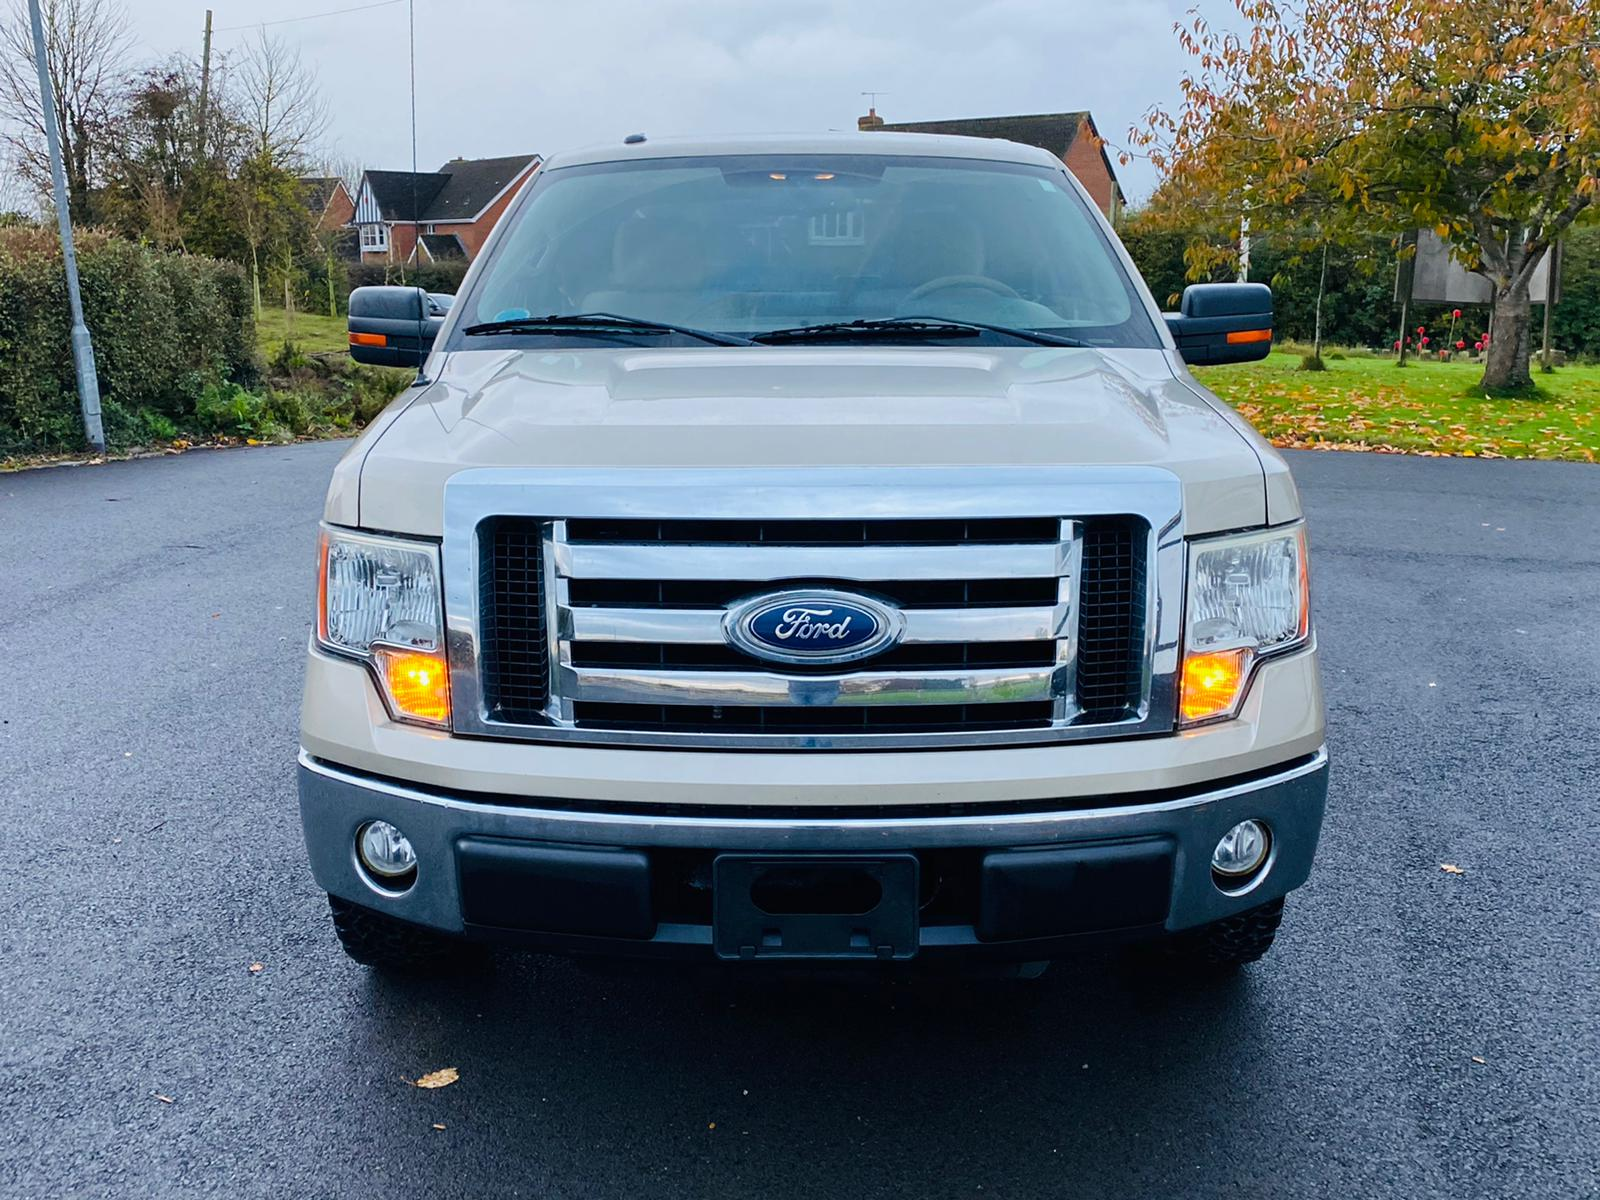 (RESERVE MET) Ford F-150 XLT 4.6L V8 Supercab - 2010 Year - 6 Seats - Fresh Imports - Image 6 of 39